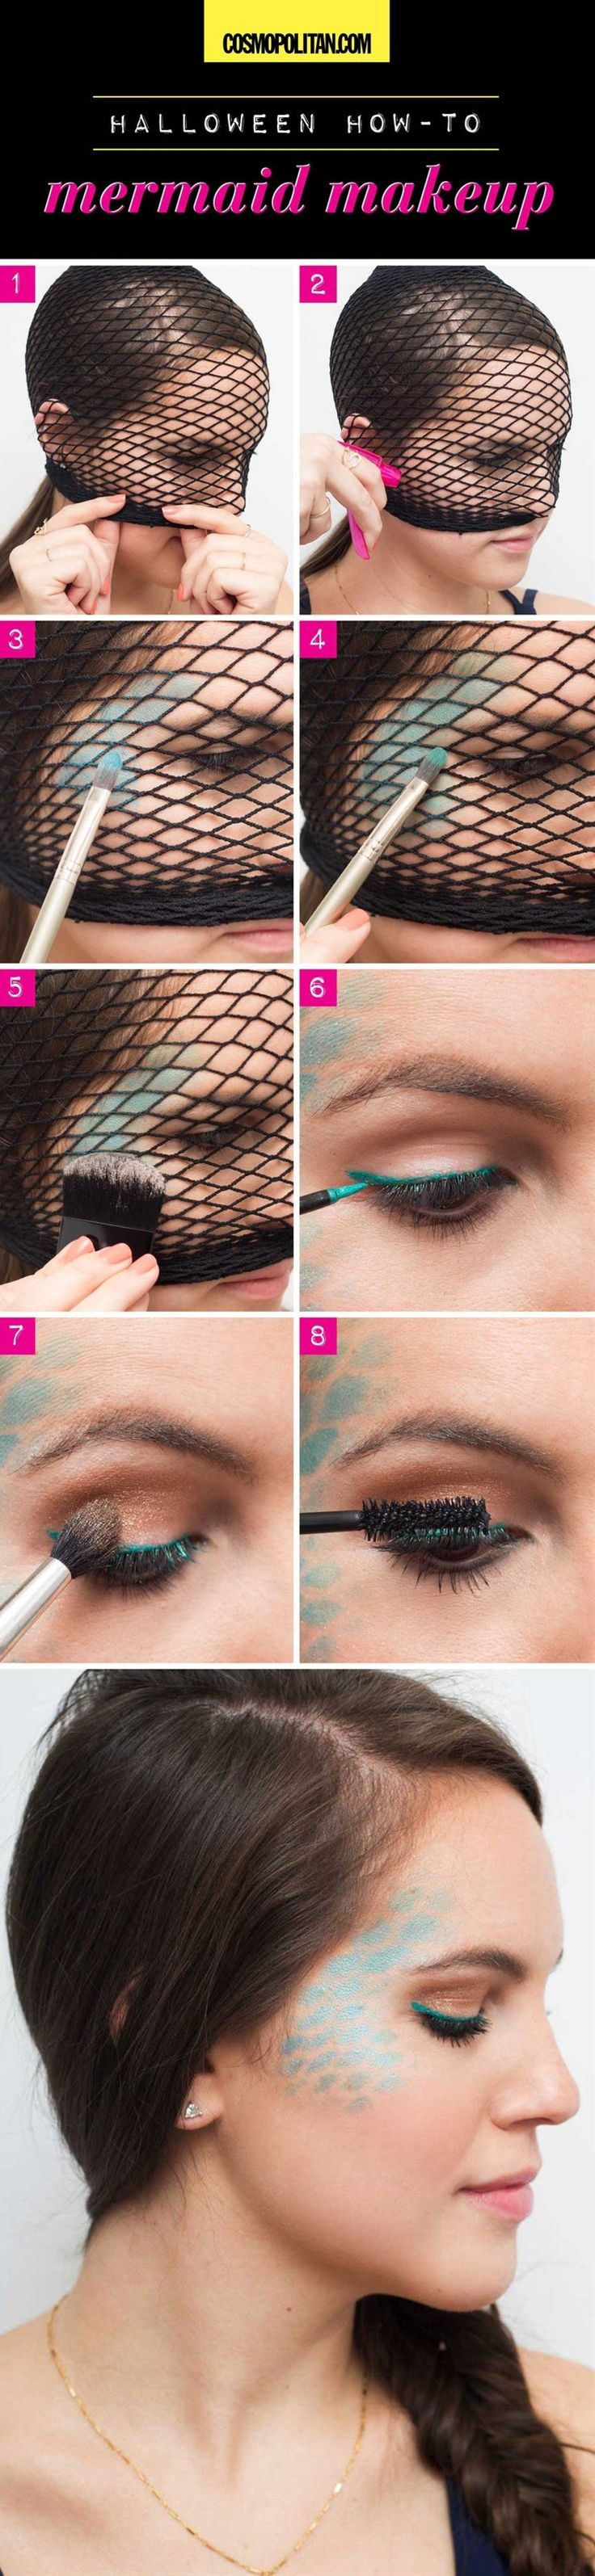 Try this easy mermaid makeup look by using fishnet tights to stencil some scales on your face